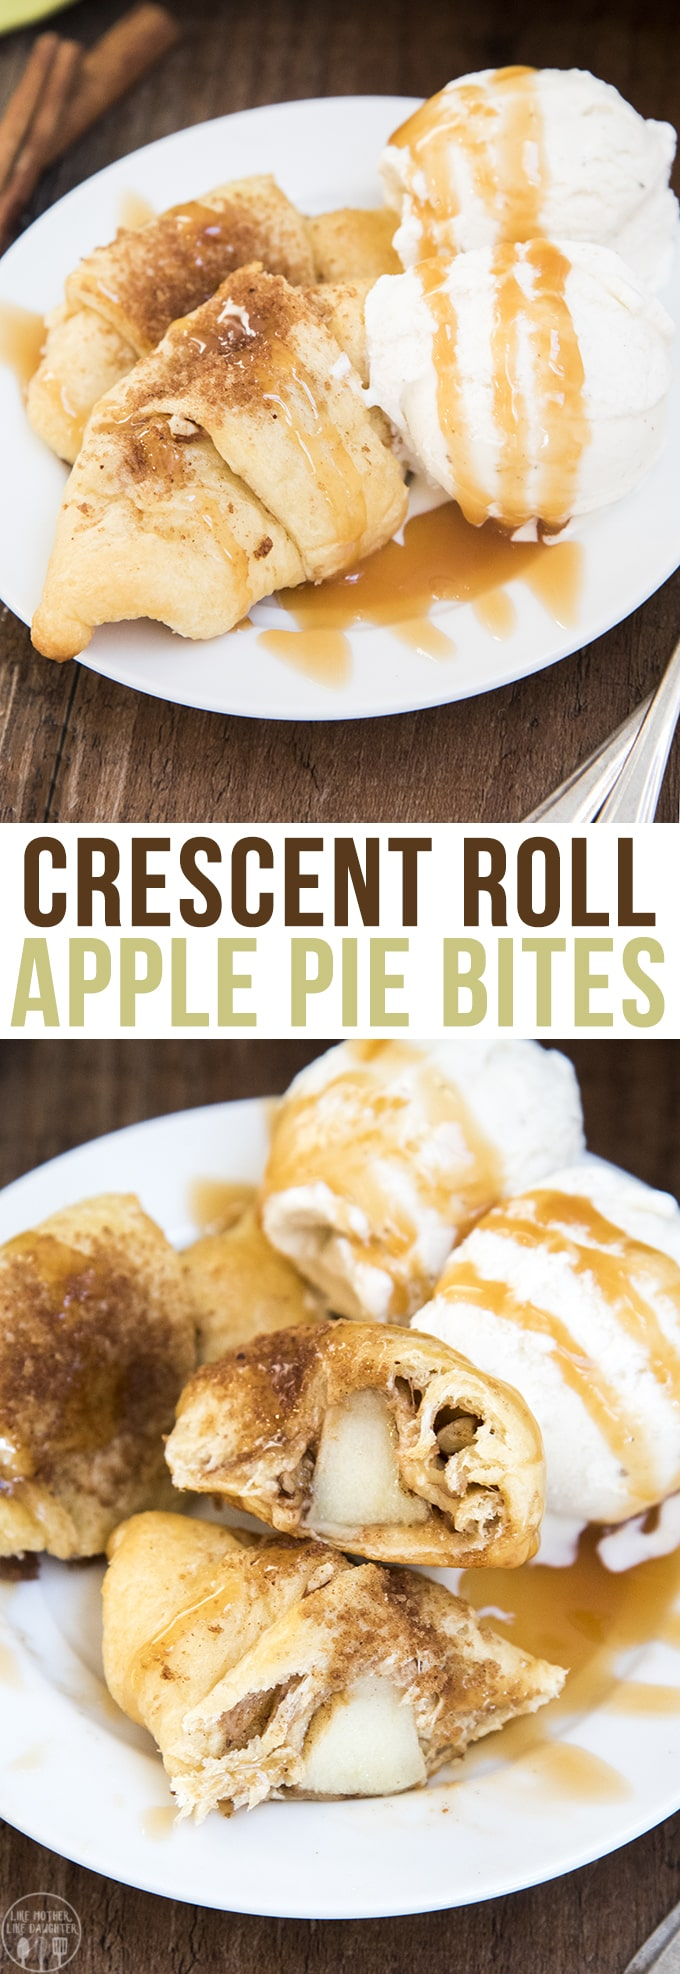 Apple Pie Bites - These crescent roll apple pie bites are so much easier than apple pie with the same great flavors. These tasty apple pie bites are made with Pillsbury Crescent Rolls and ready in less than 30 minutes!